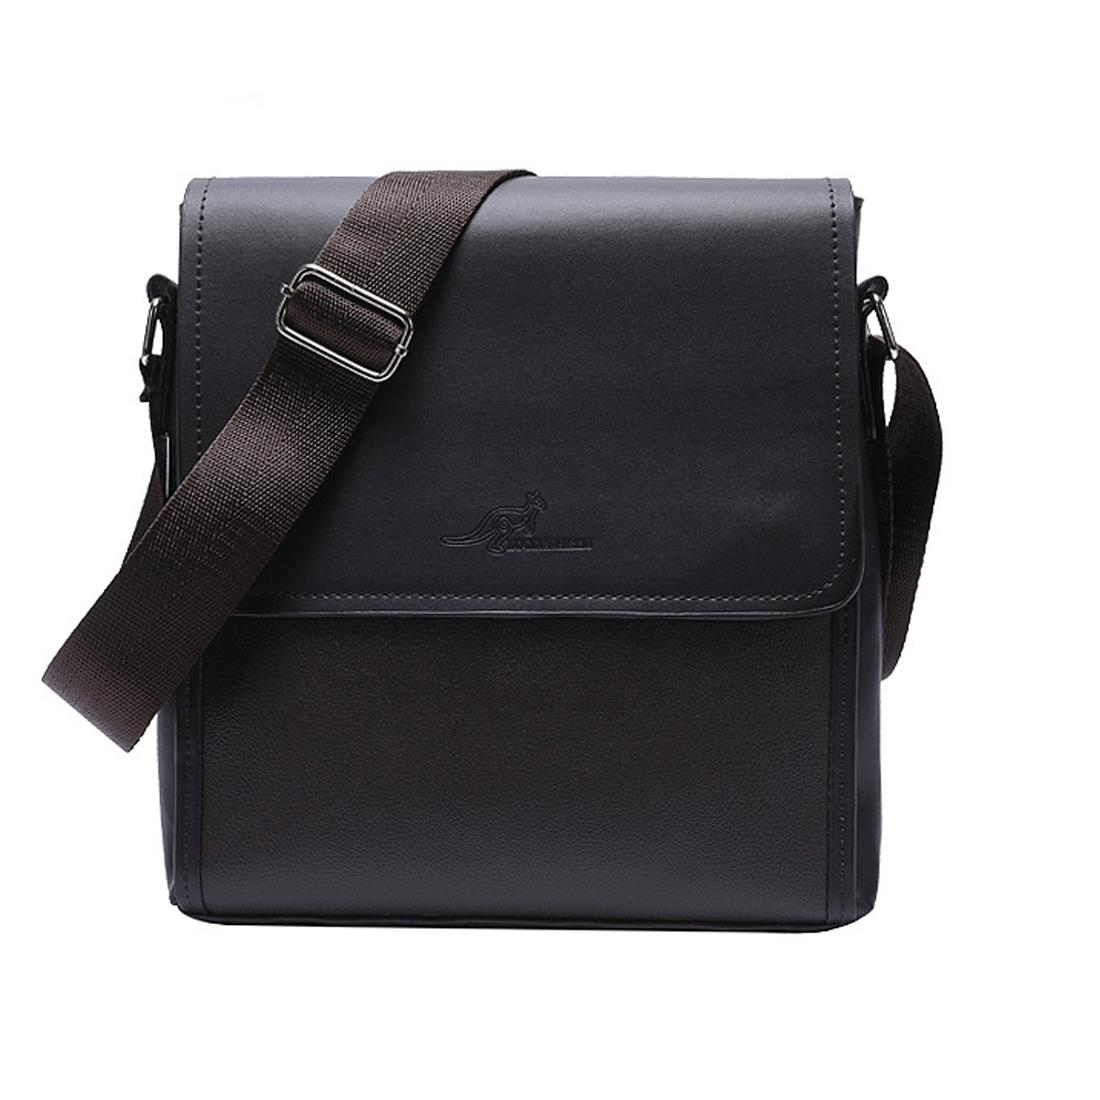 Messenger Bags for sale - Messenger Bags for Men online brands ... ded6bb163cfc5